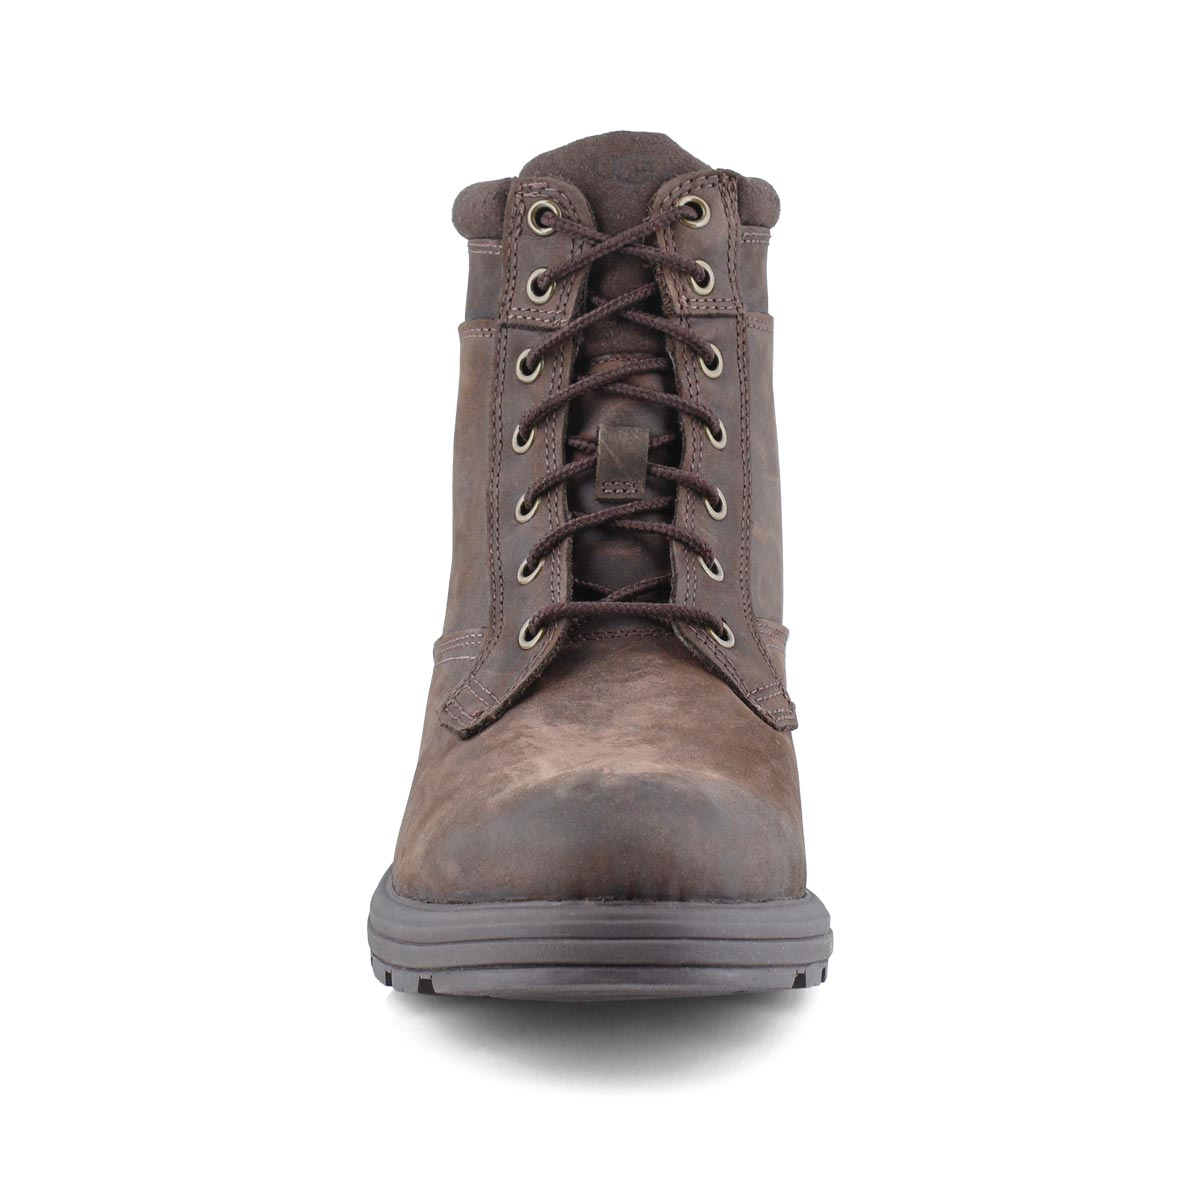 Mns Biltmore stout wtpf lace up boot